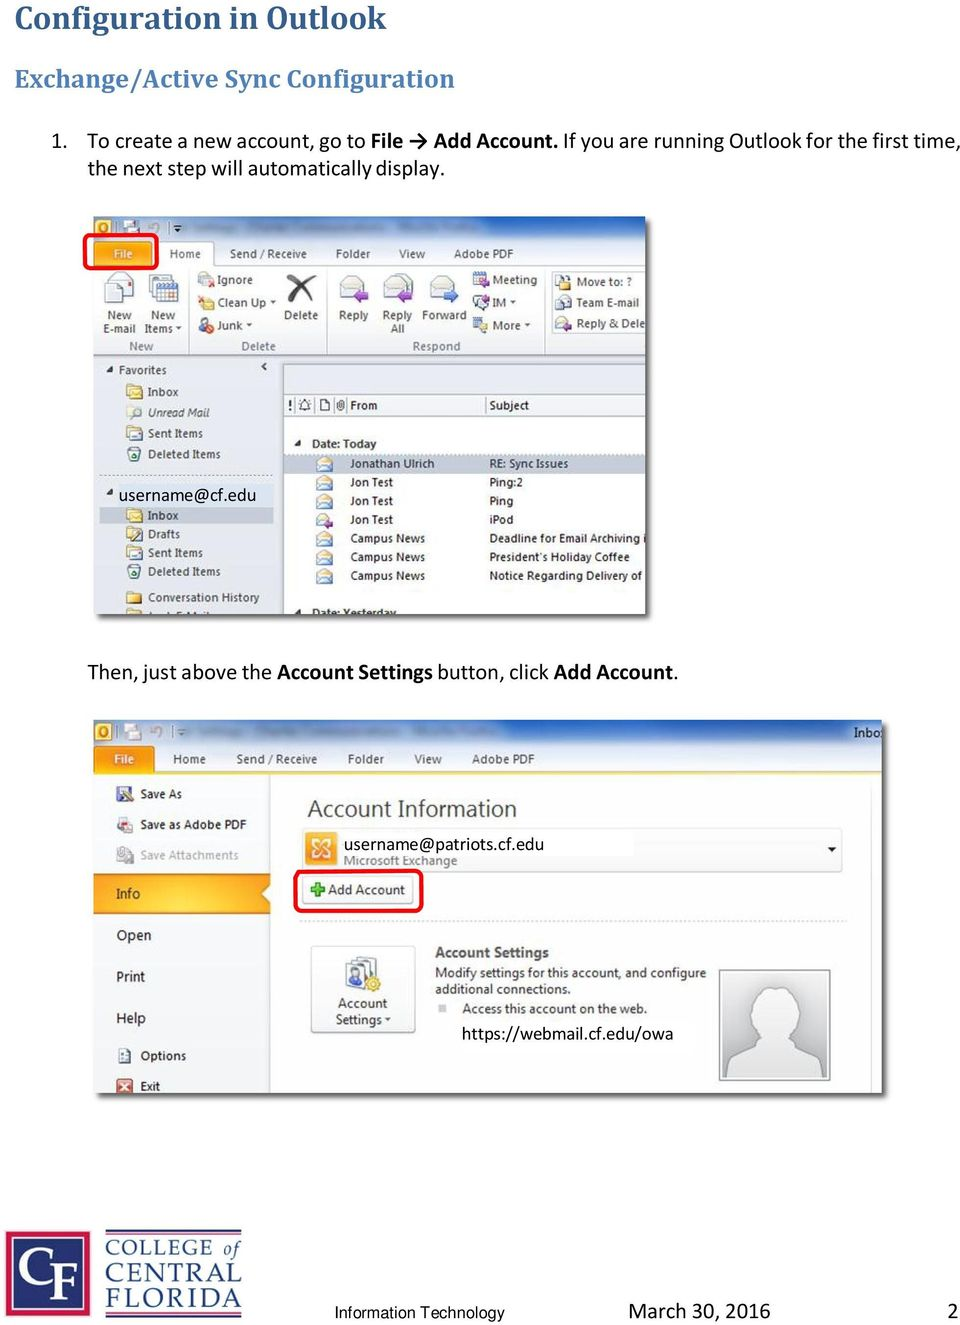 If you are running Outlook for the first time, the next step will automatically